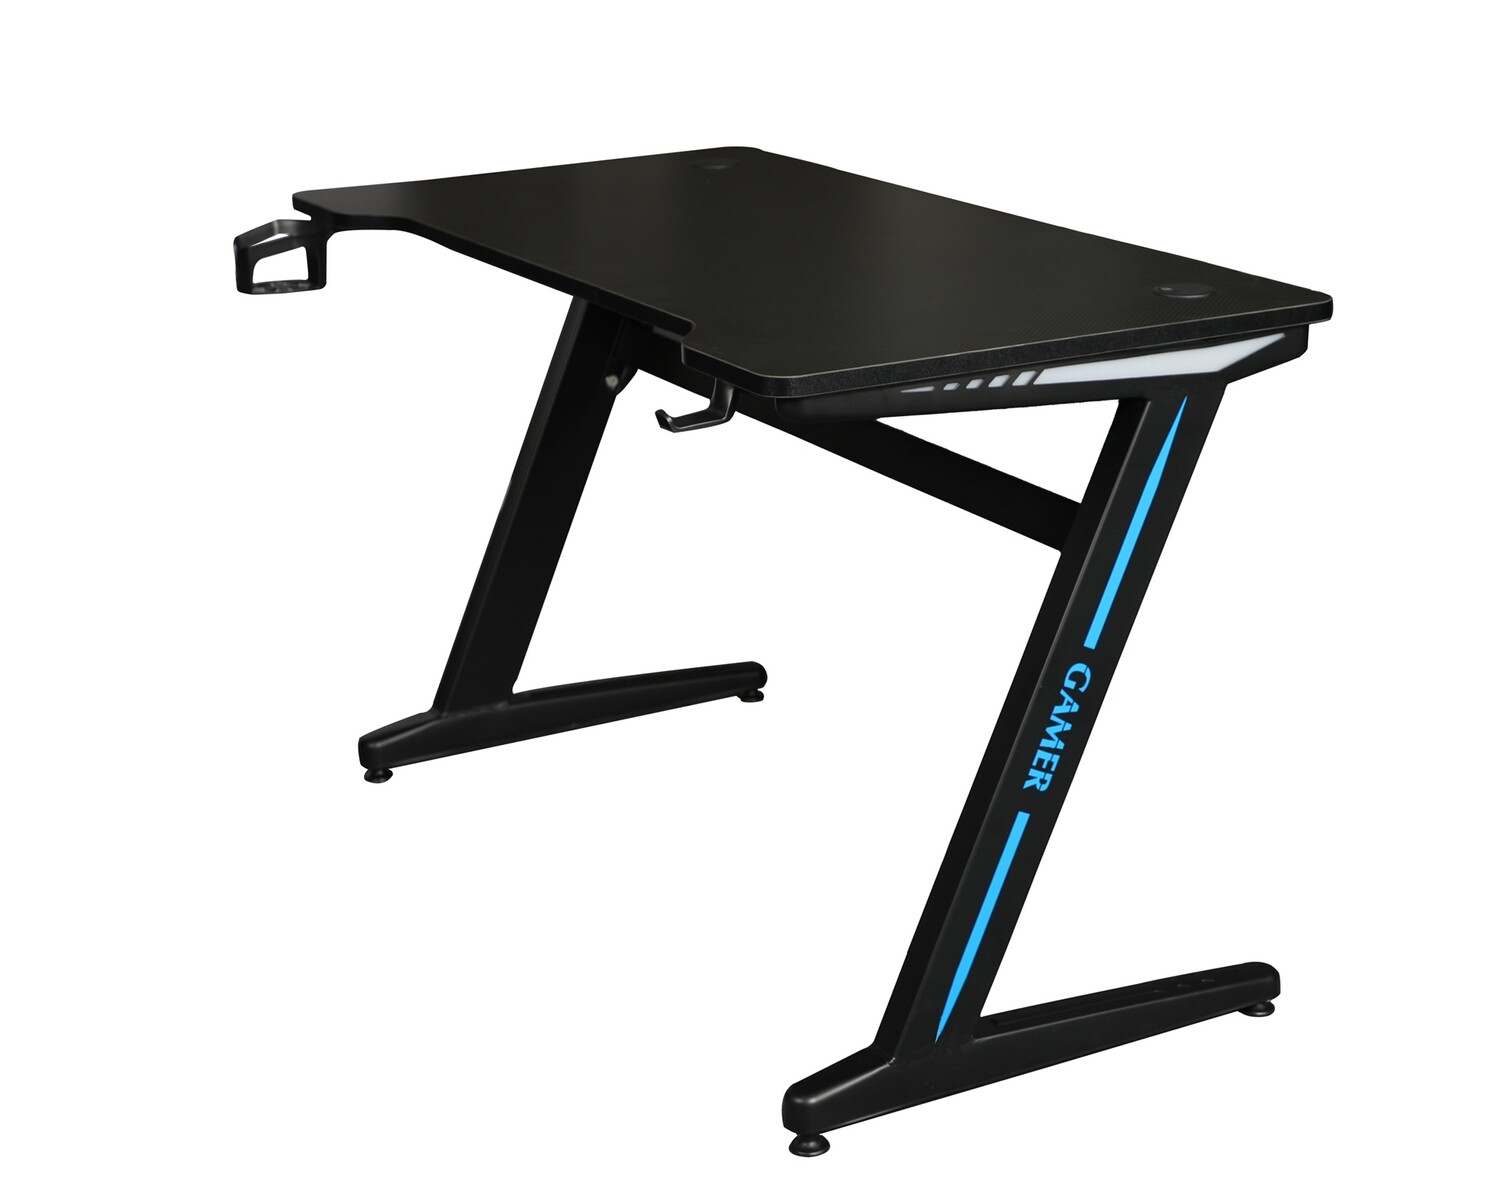 OFX Desk Z Gaming Table with RGB Light